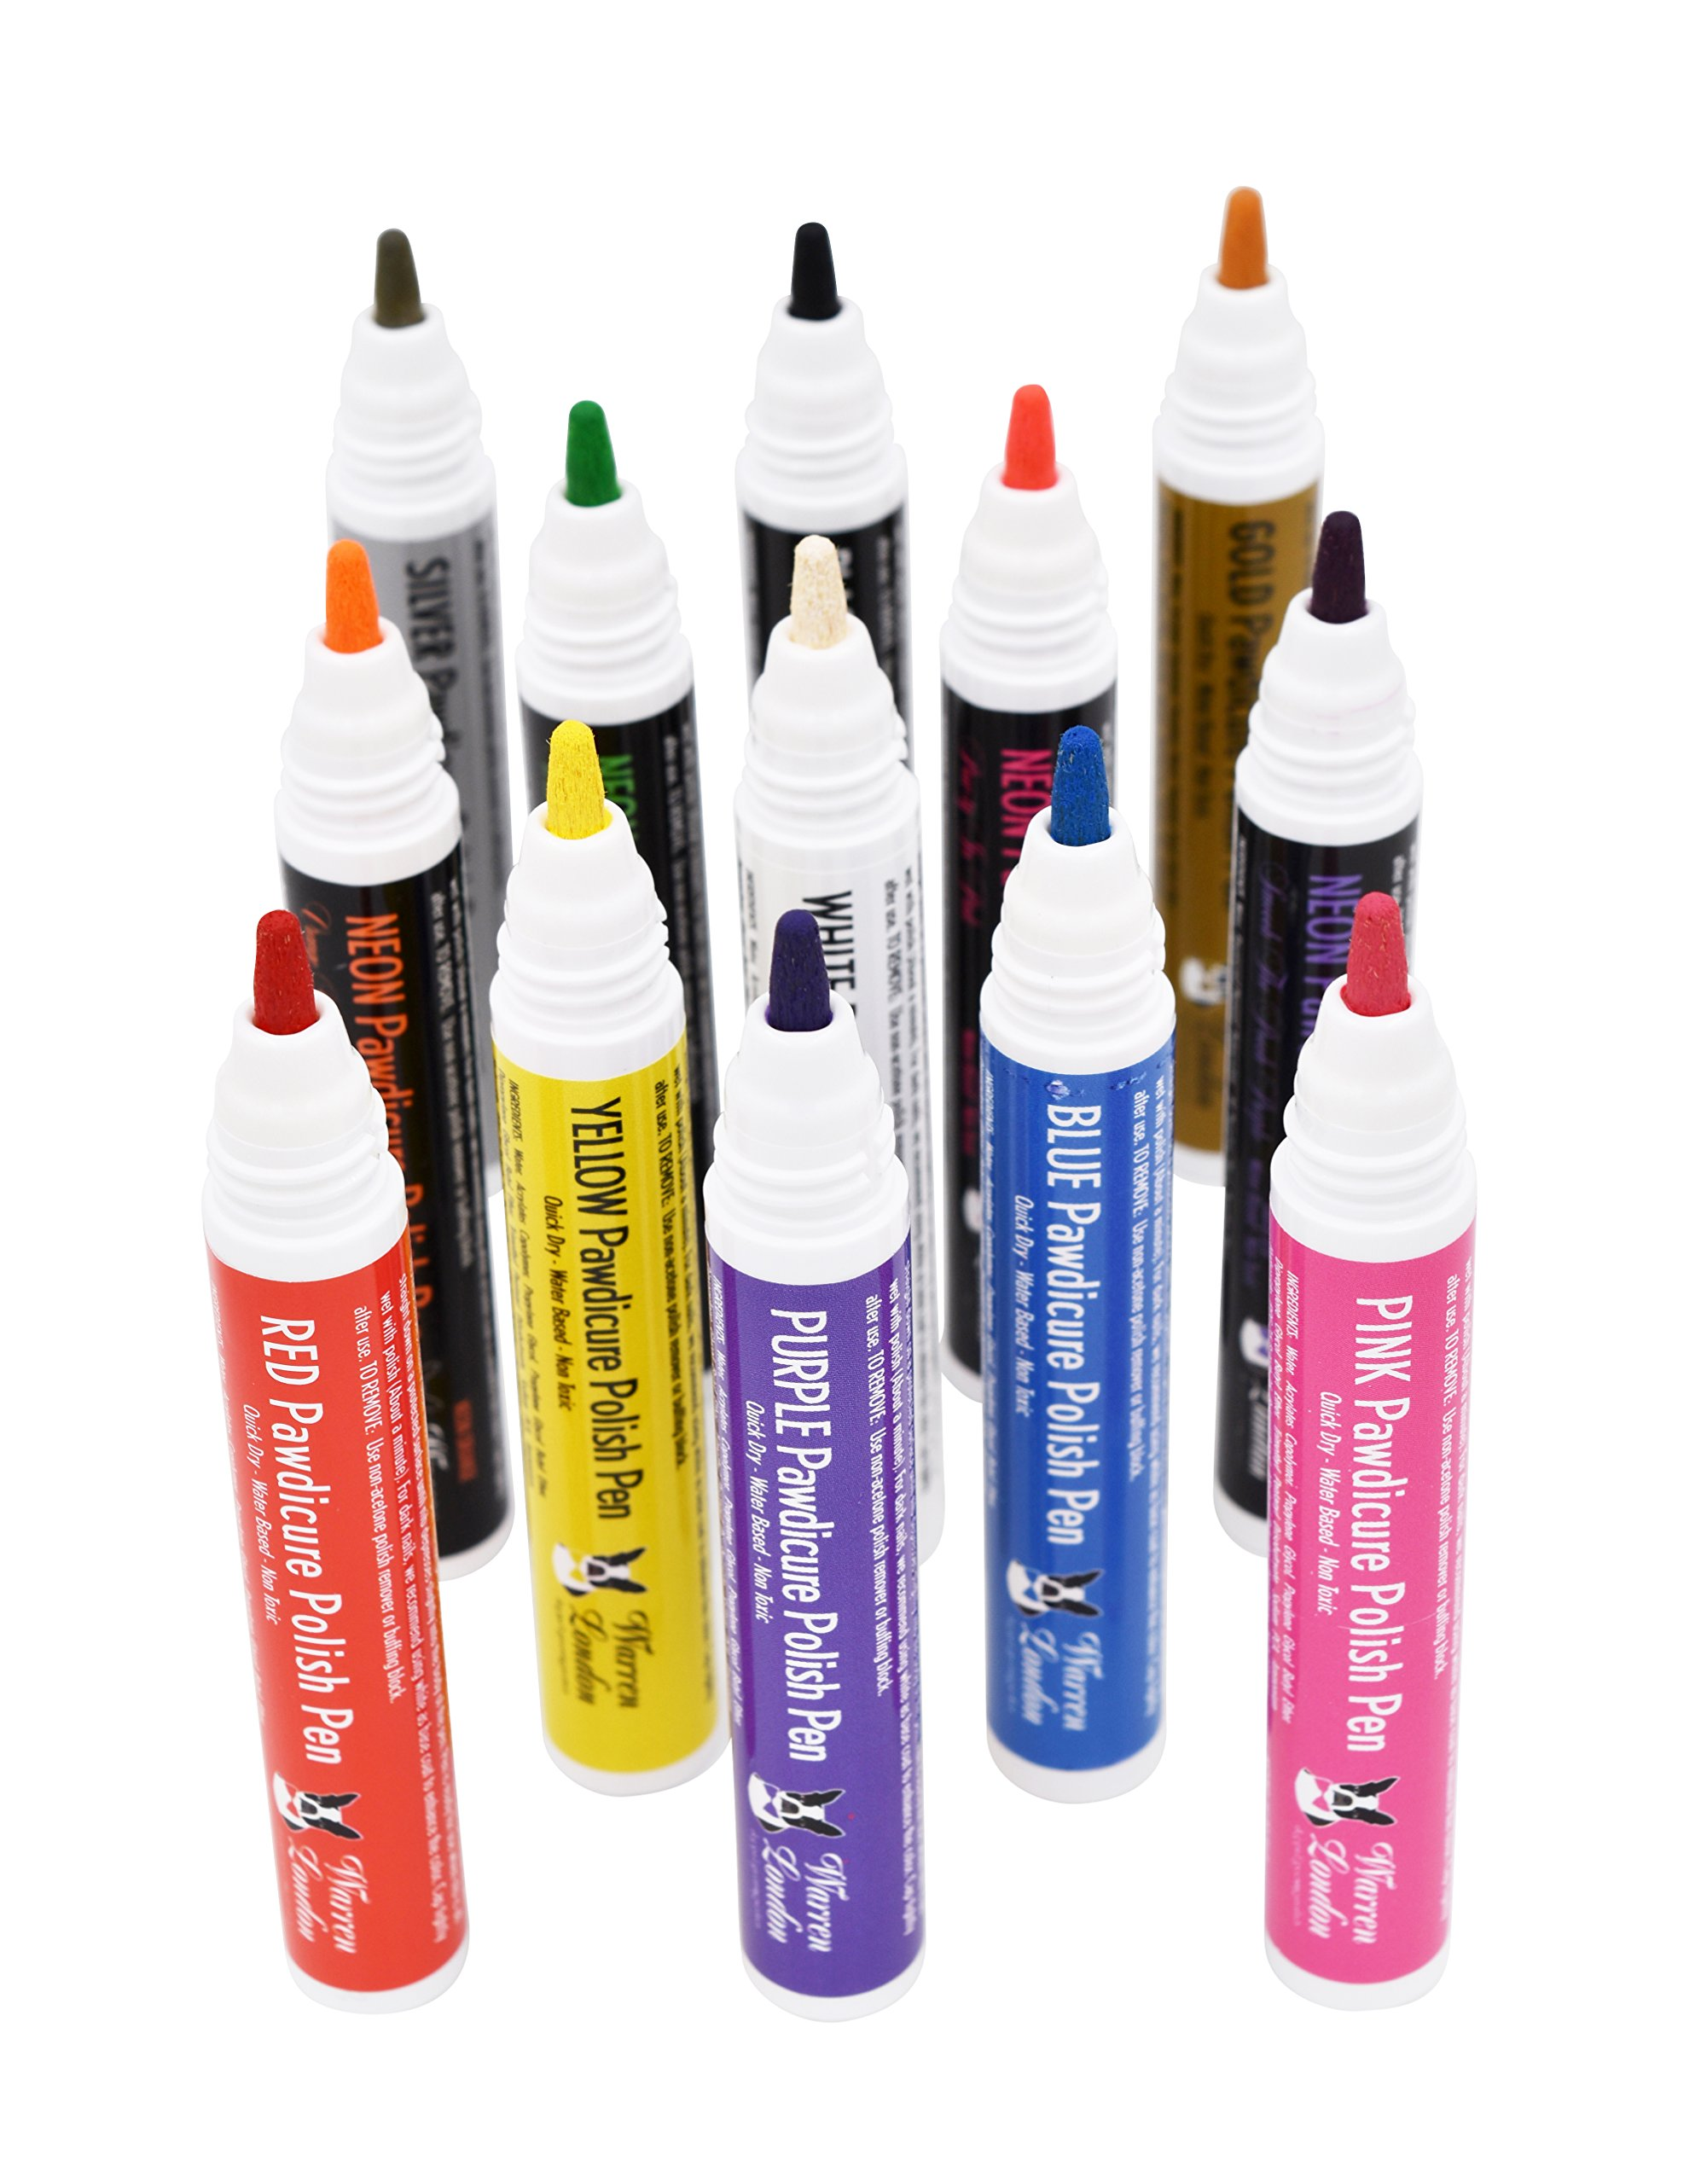 Warren London Pawdicure Dog Nail Polish Pen - Quick Dry - Water Based - Non Toxic - Made in USA - All 13 Colors by Warren London